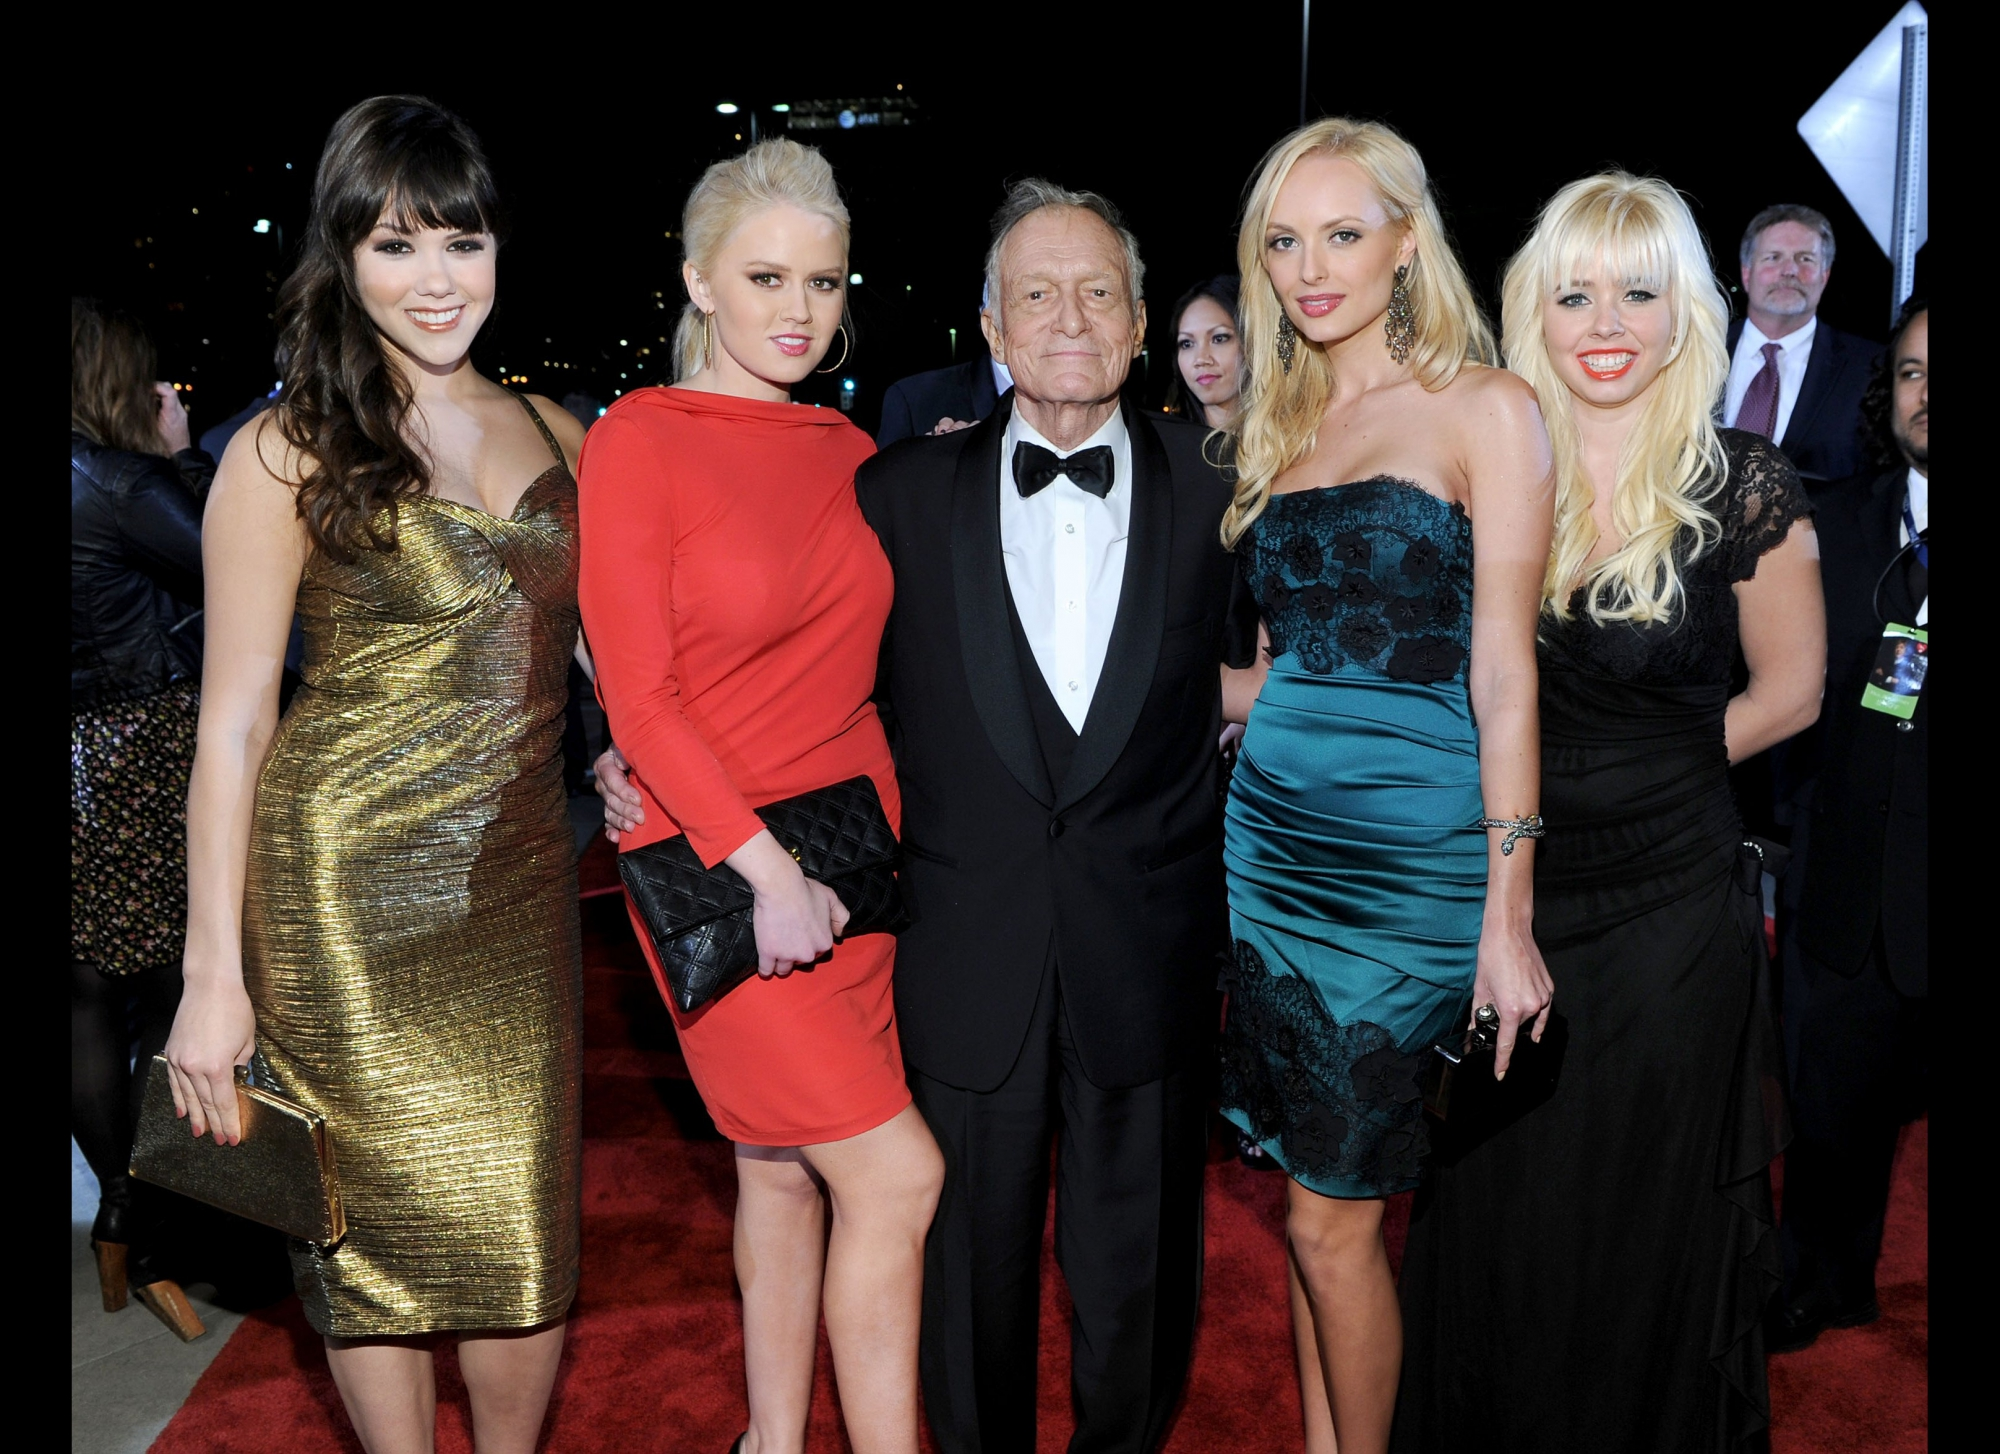 Hugh and his girls